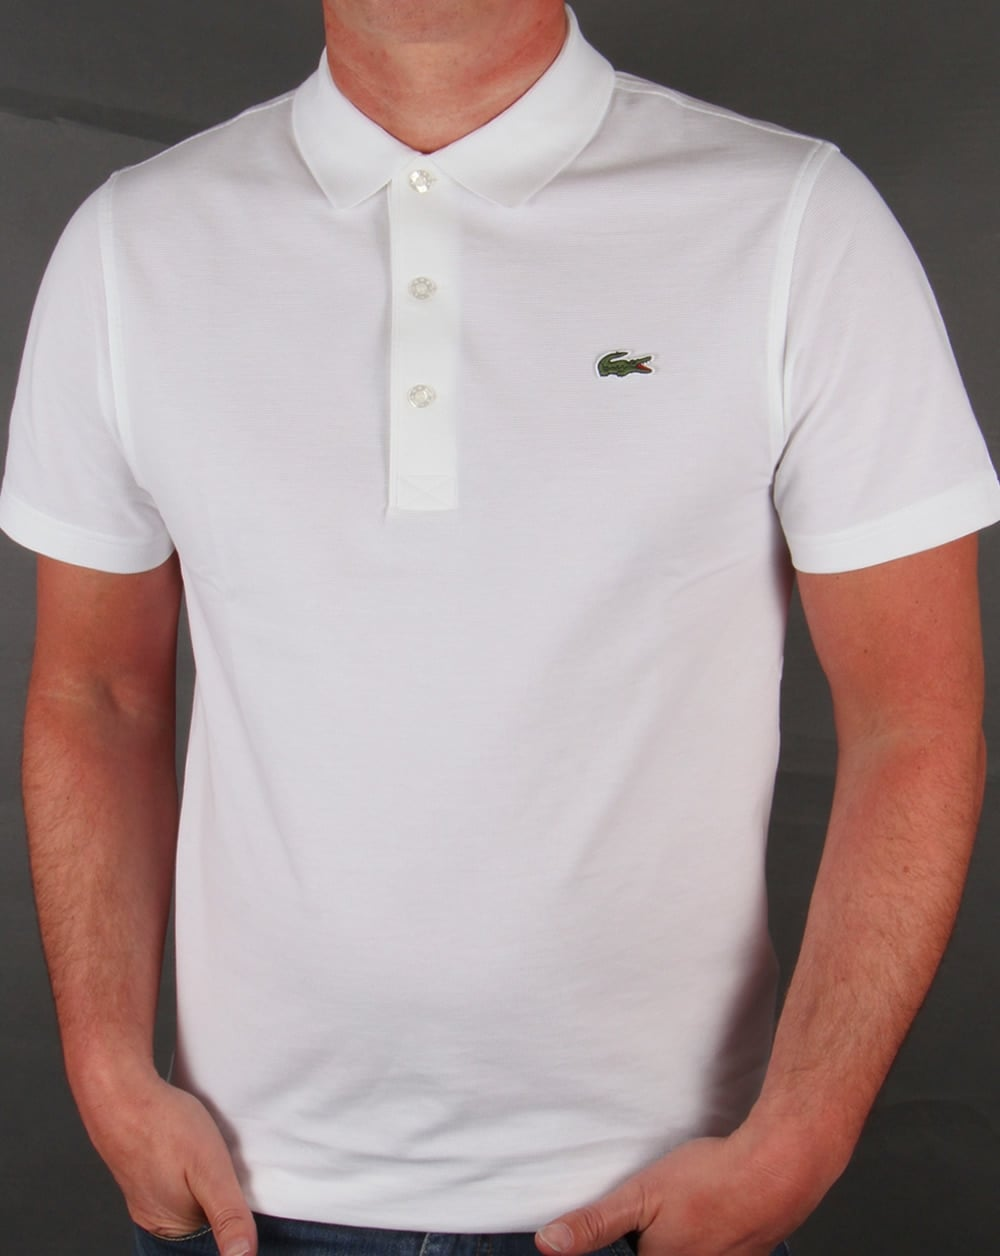 6204455dfb06 Mens Lacoste Polo Shirts Uk - DREAMWORKS